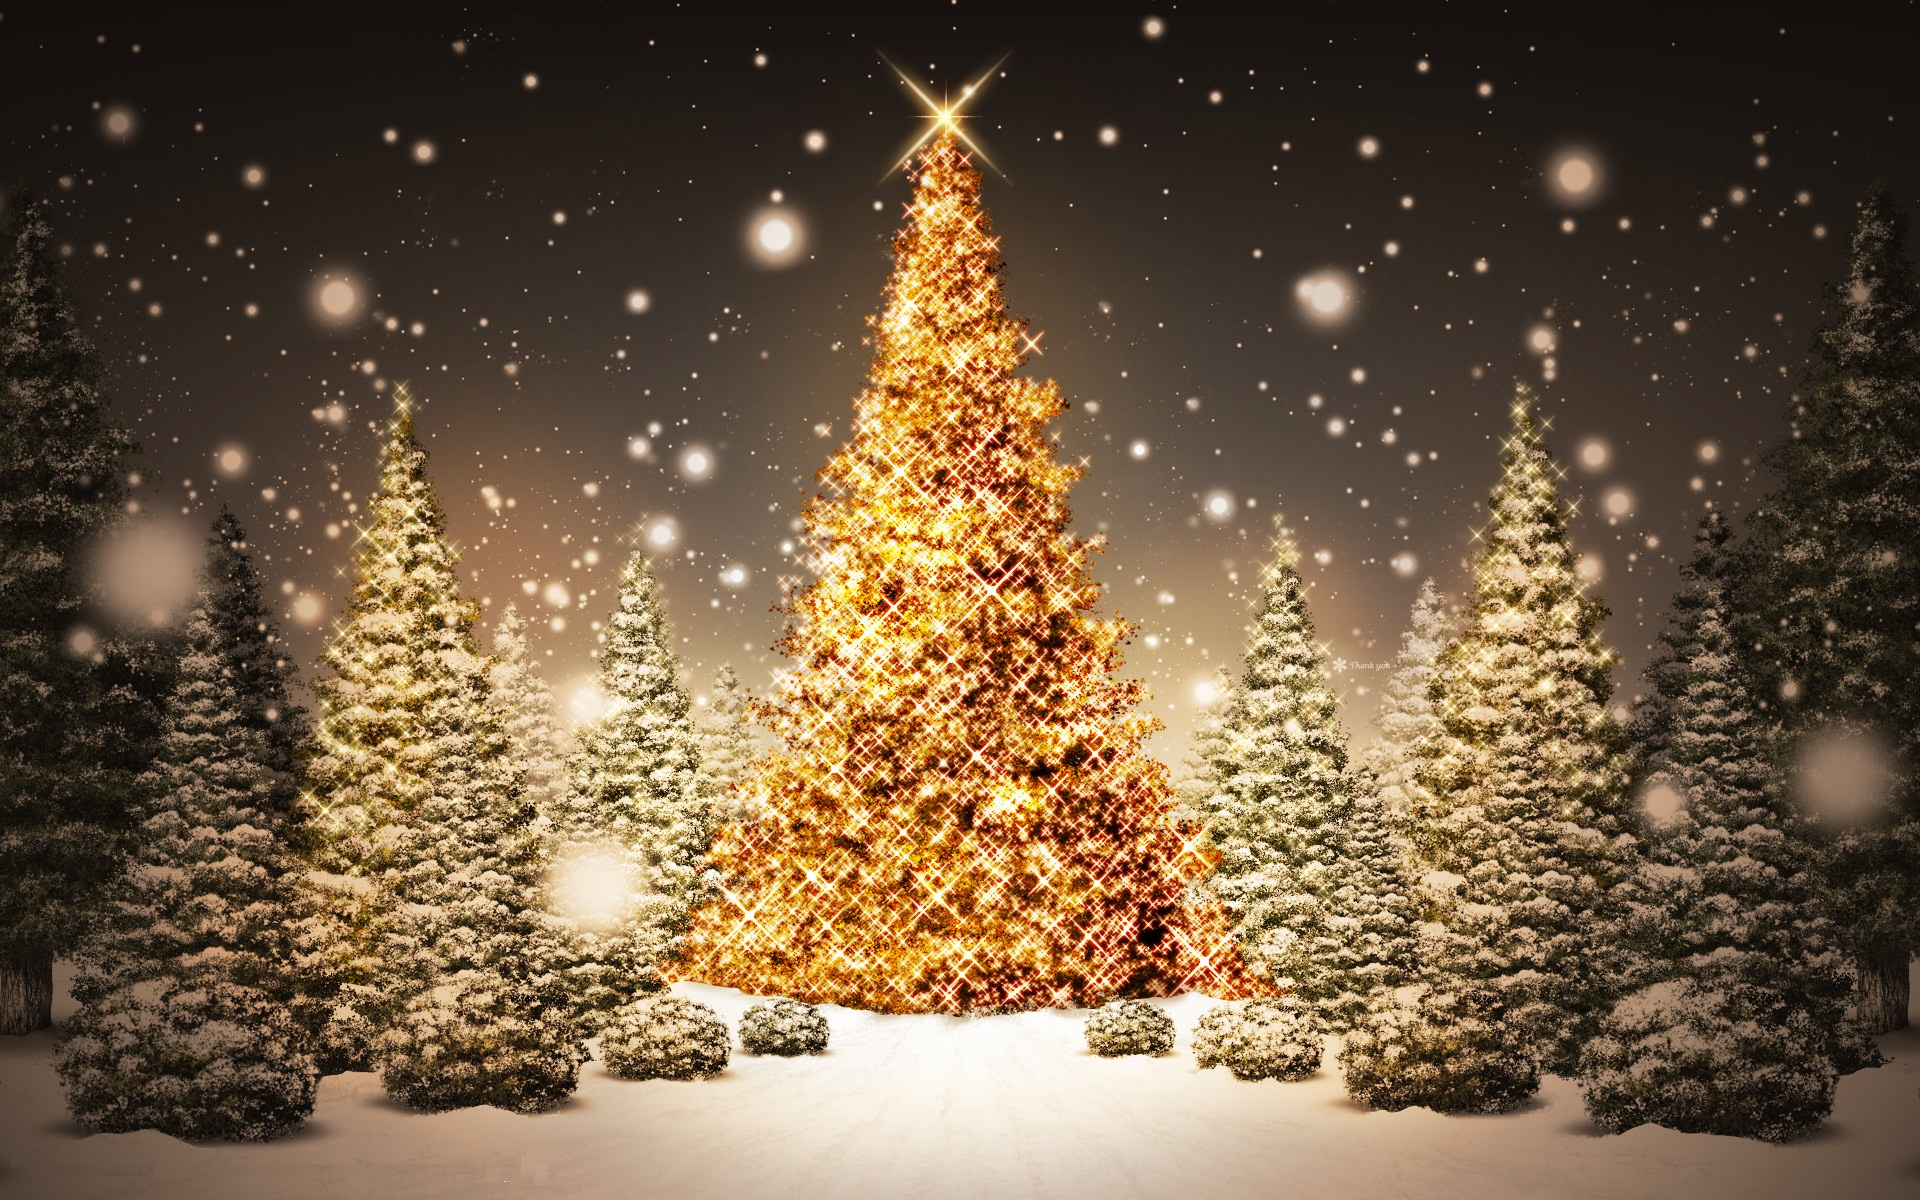 christmas holiday 2014 hd wide wallpaper top desktop images 1920x1200